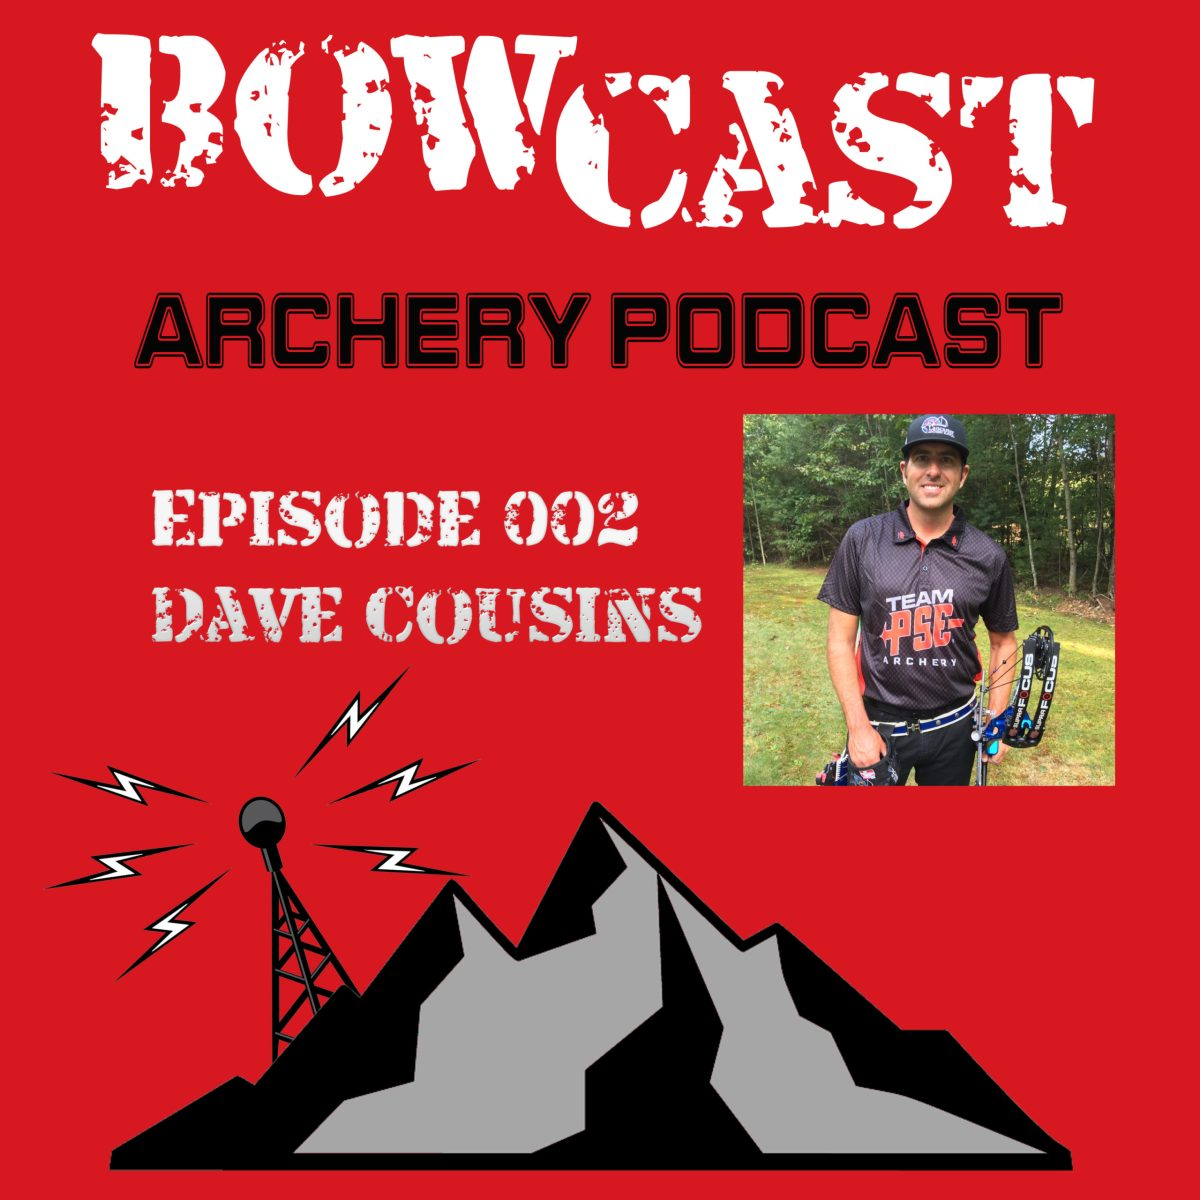 Backyard Archery Tips for Staying Sharp with Dave Cousins